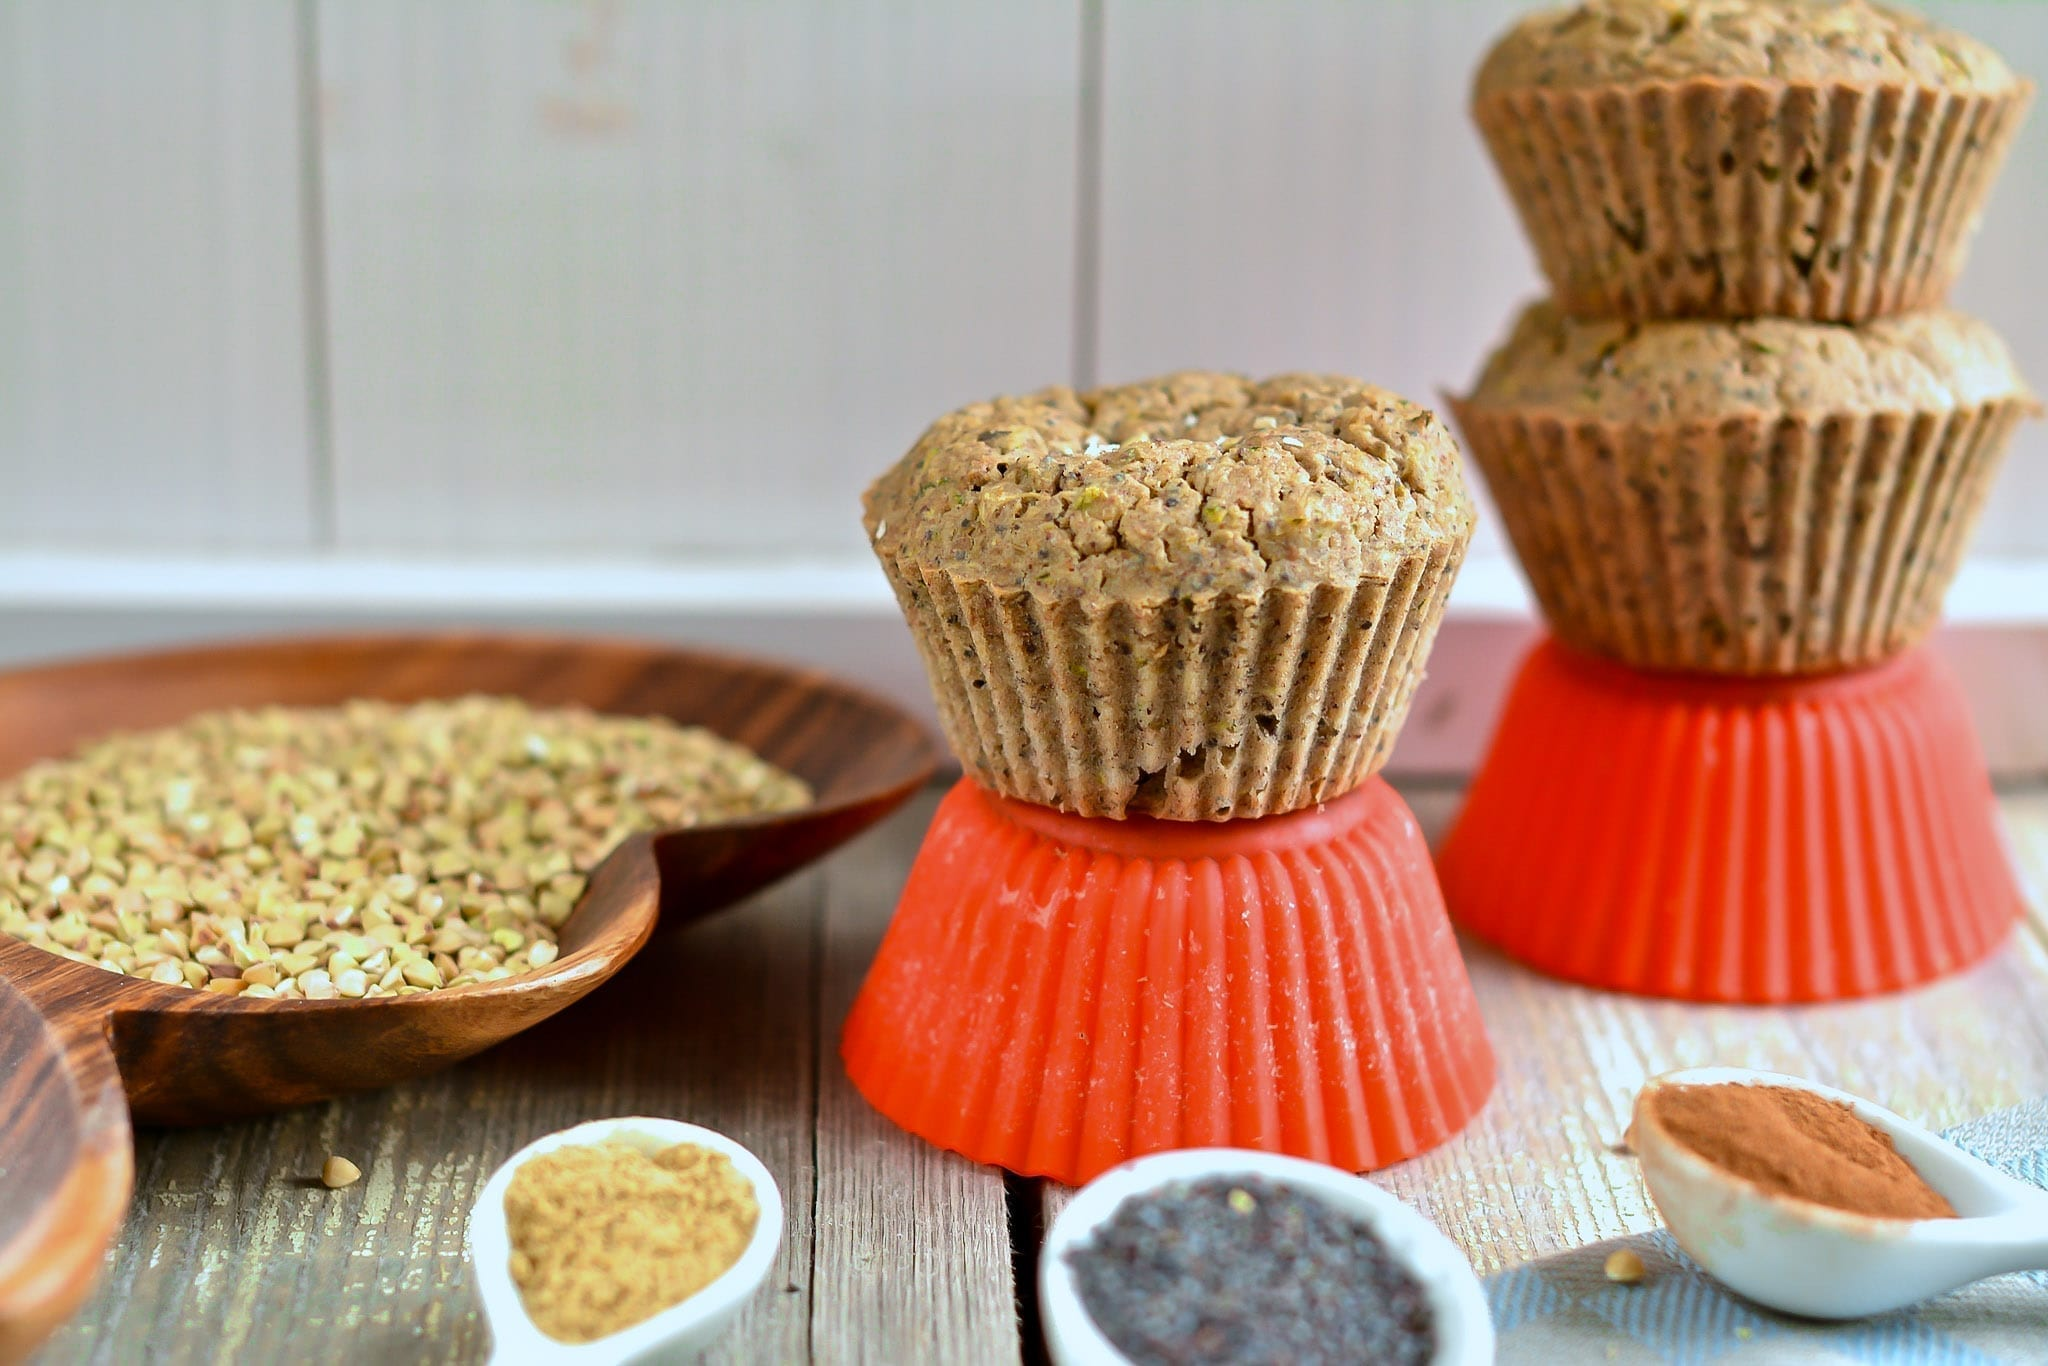 muffins-oat-bran-buckwheat-with-zucchini